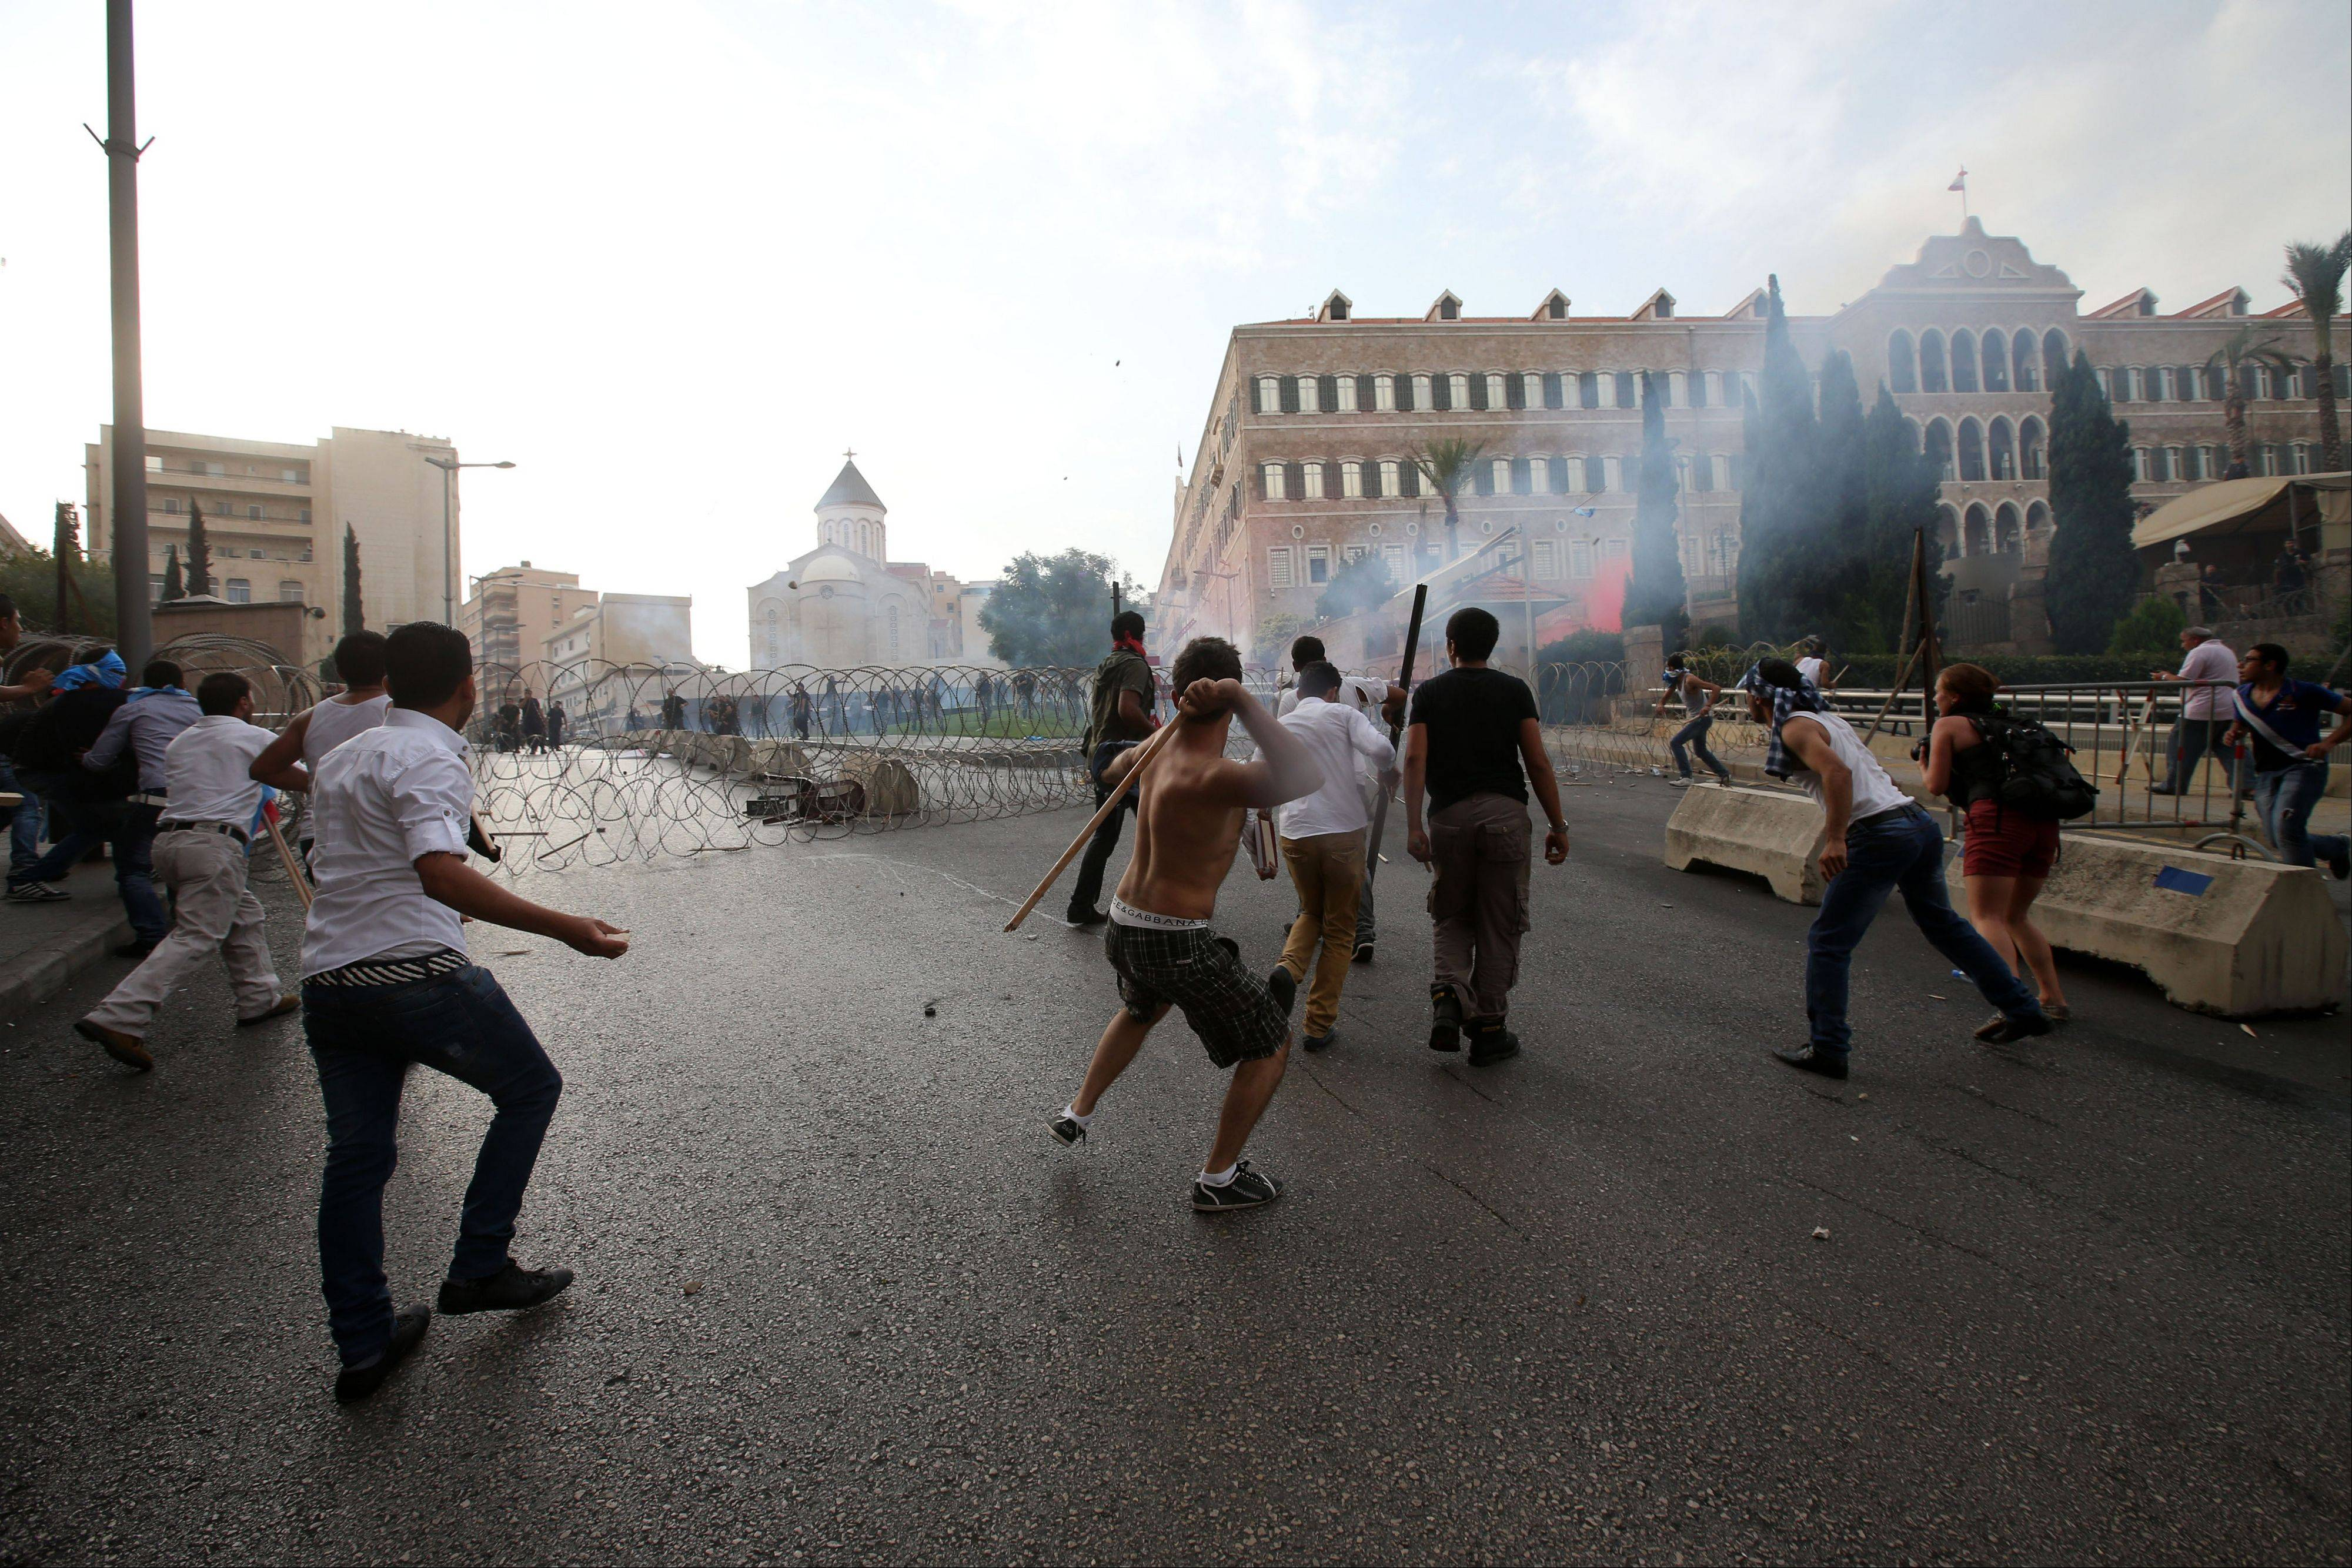 Lebanese protesters throw sticks and rocks Sunday during clashes with security forces after the funeral of Brig. Gen. Wissam al-Hassan who was assassinated on Friday by a car bomb in Beirut, Lebanon.